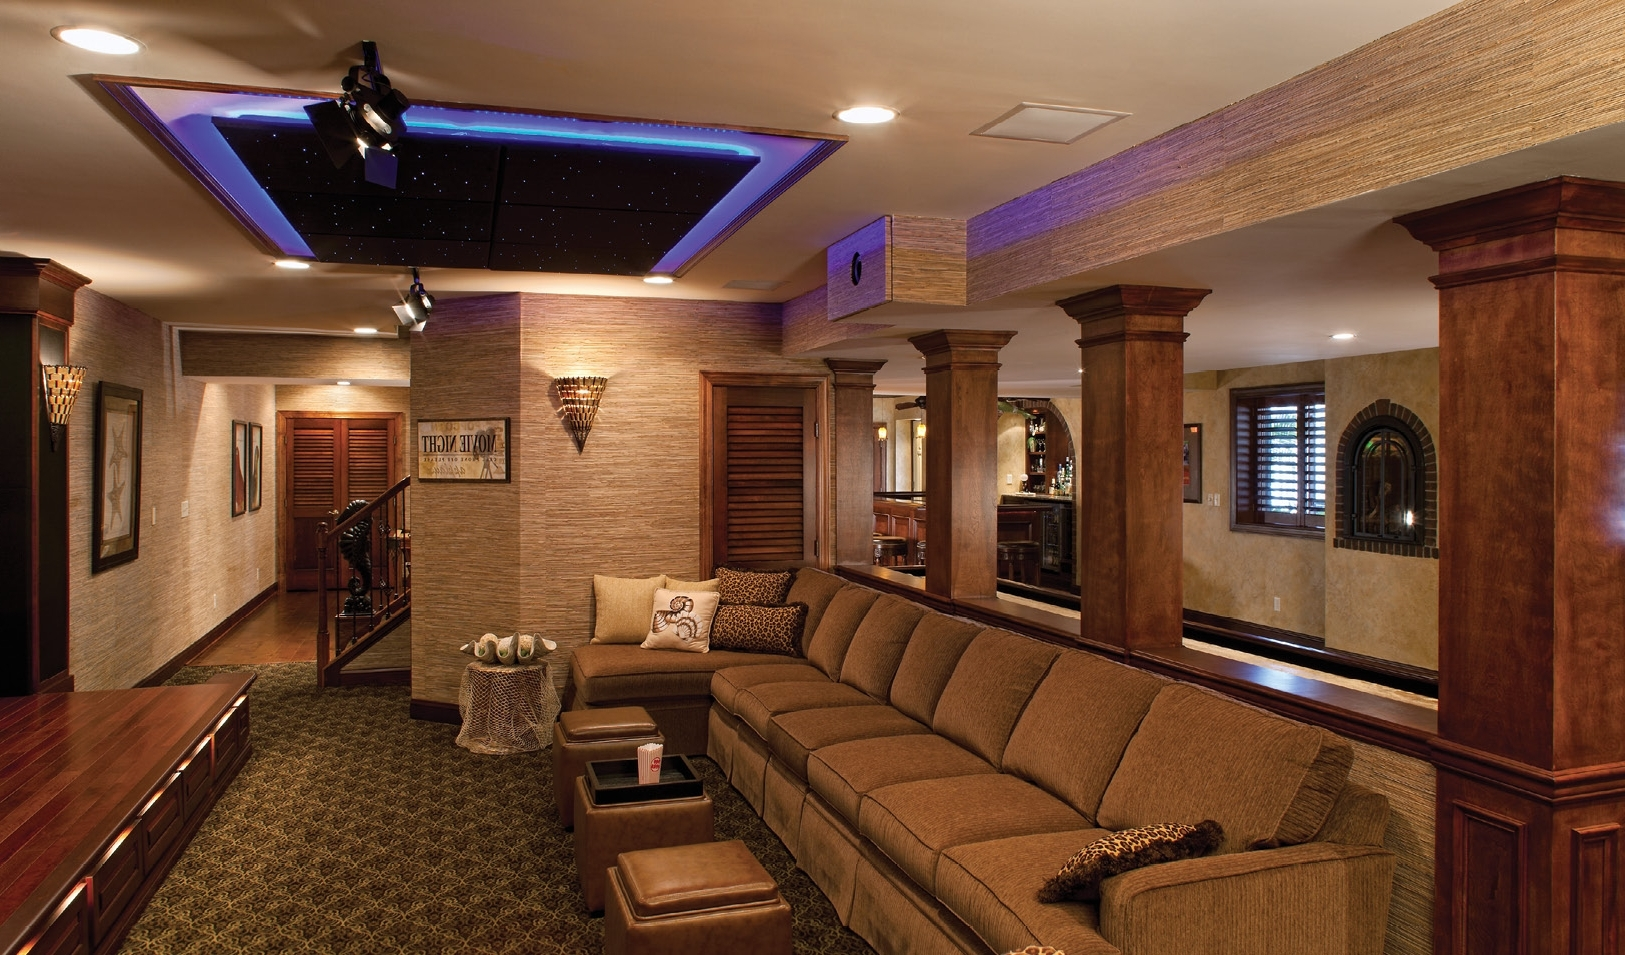 Ceiling Soffits Electronic House 40+ Soffit Lighting Living Room Ideas